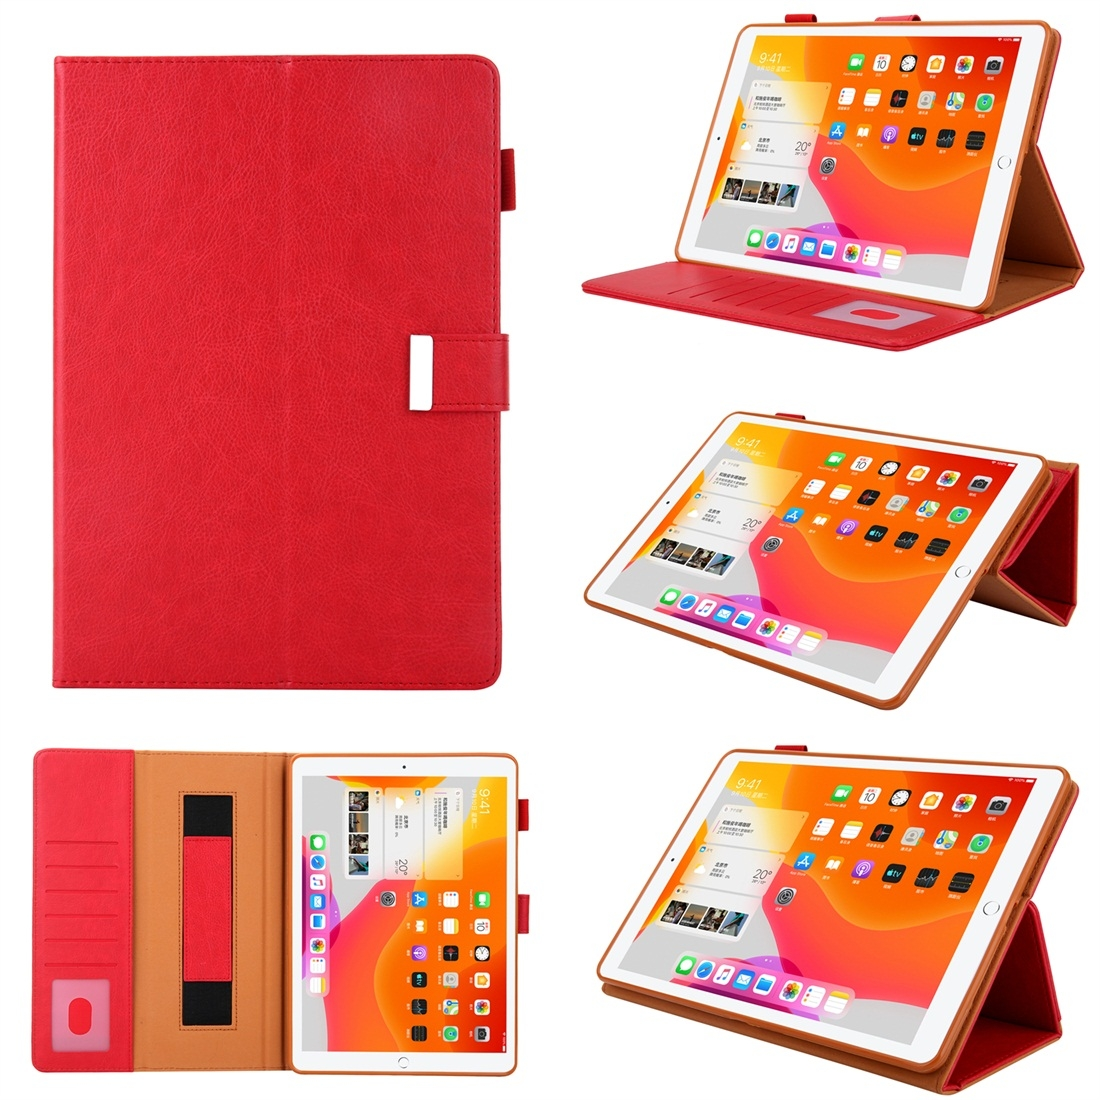 iPad 7th Generation Case Fits iPad 5/6/7/8/9, Features A Trendy Leather Design & Auto Sleep (Red)